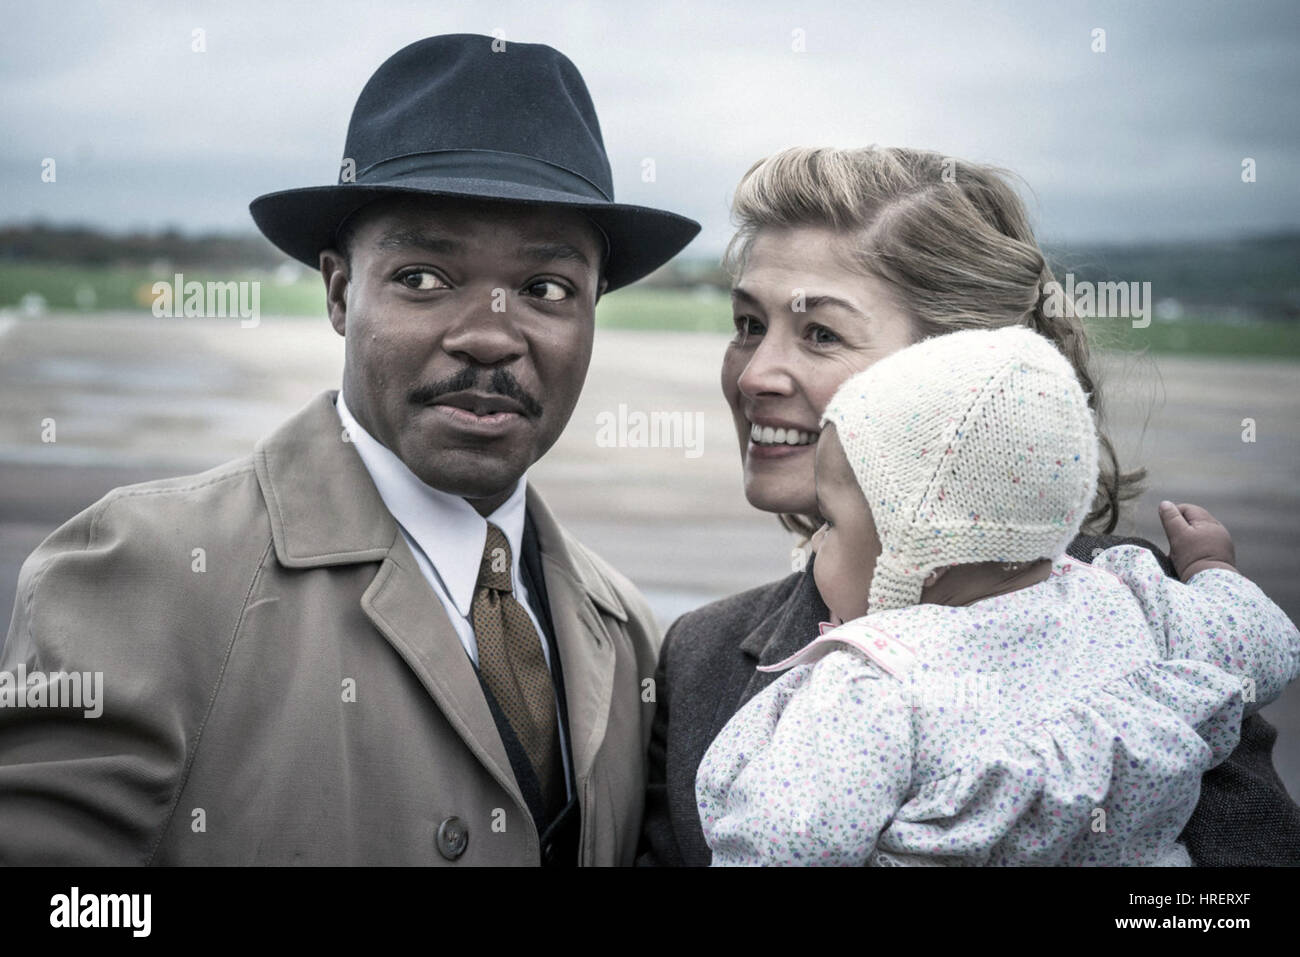 A United Kingdom is an upcoming British period biopic directed by Amma Asante and starring David Oyelowo and Rosamund - Stock Image